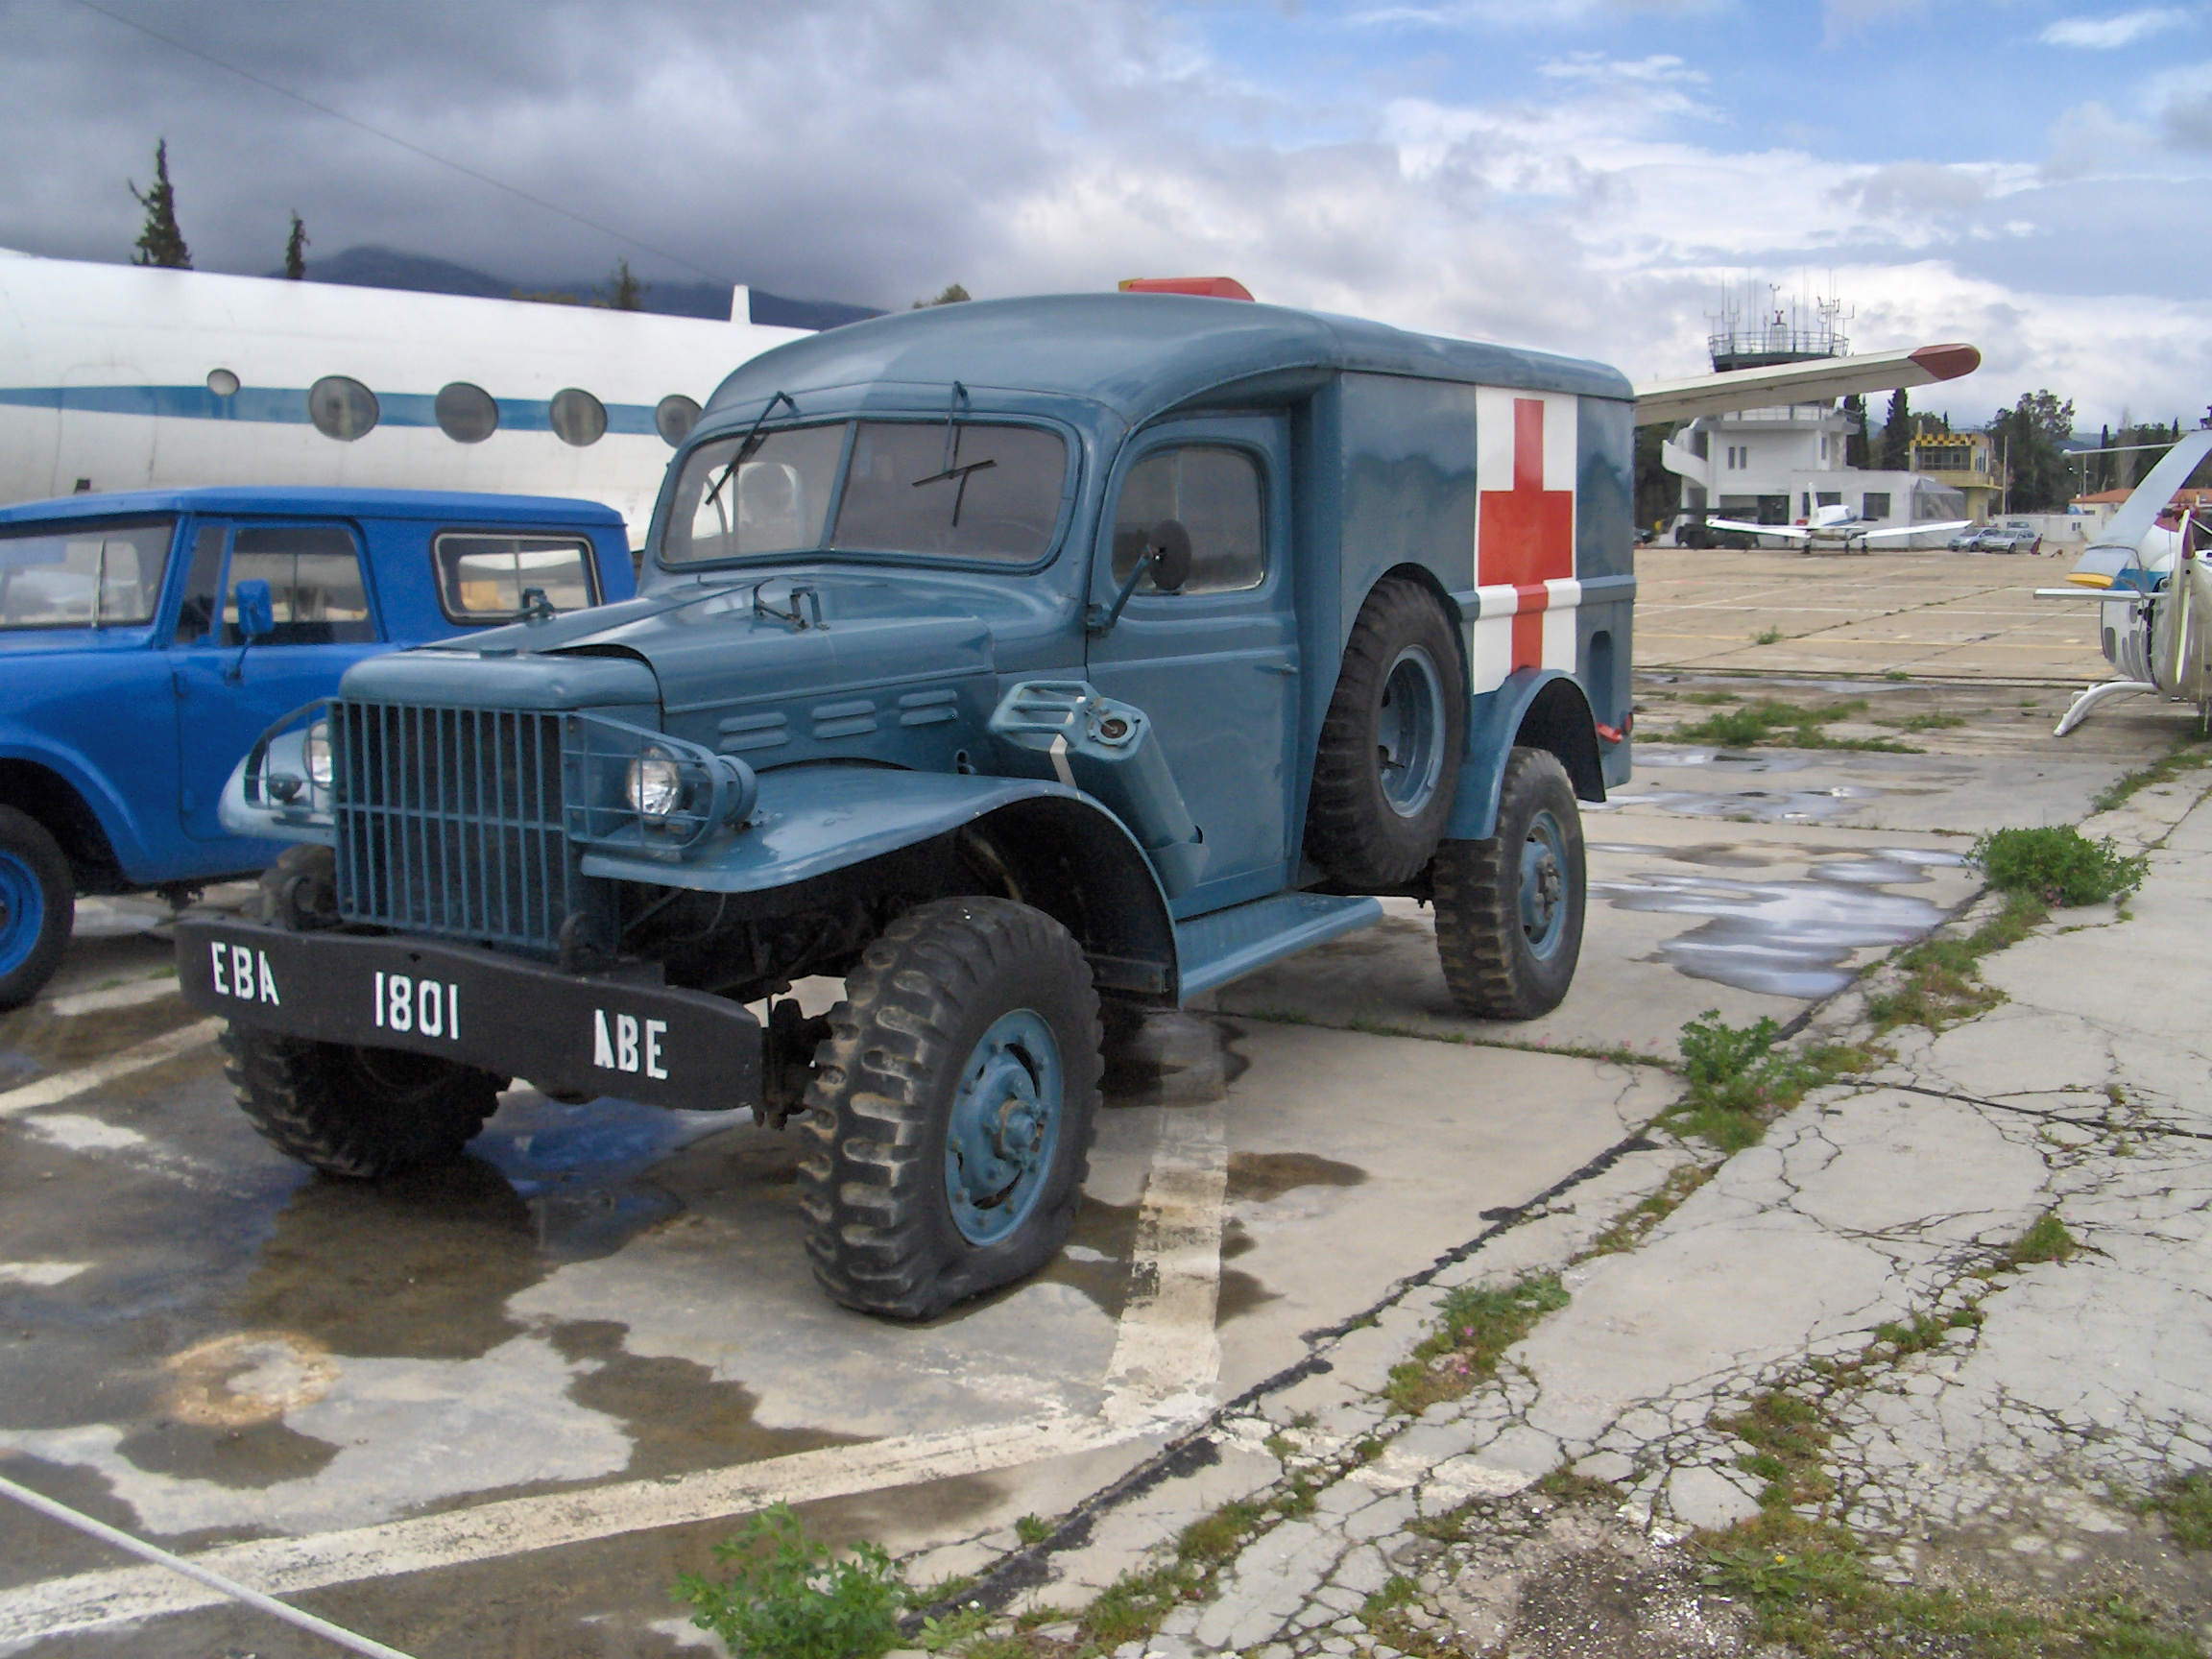 Dodge trucks in wwii -  Wc54 Dodge Usarmy Ambulance Wwii Ww2 Worldwartwo 1944 Over There Museum Of World War Two More Http Instagram Com Atthefrontline Pinterest